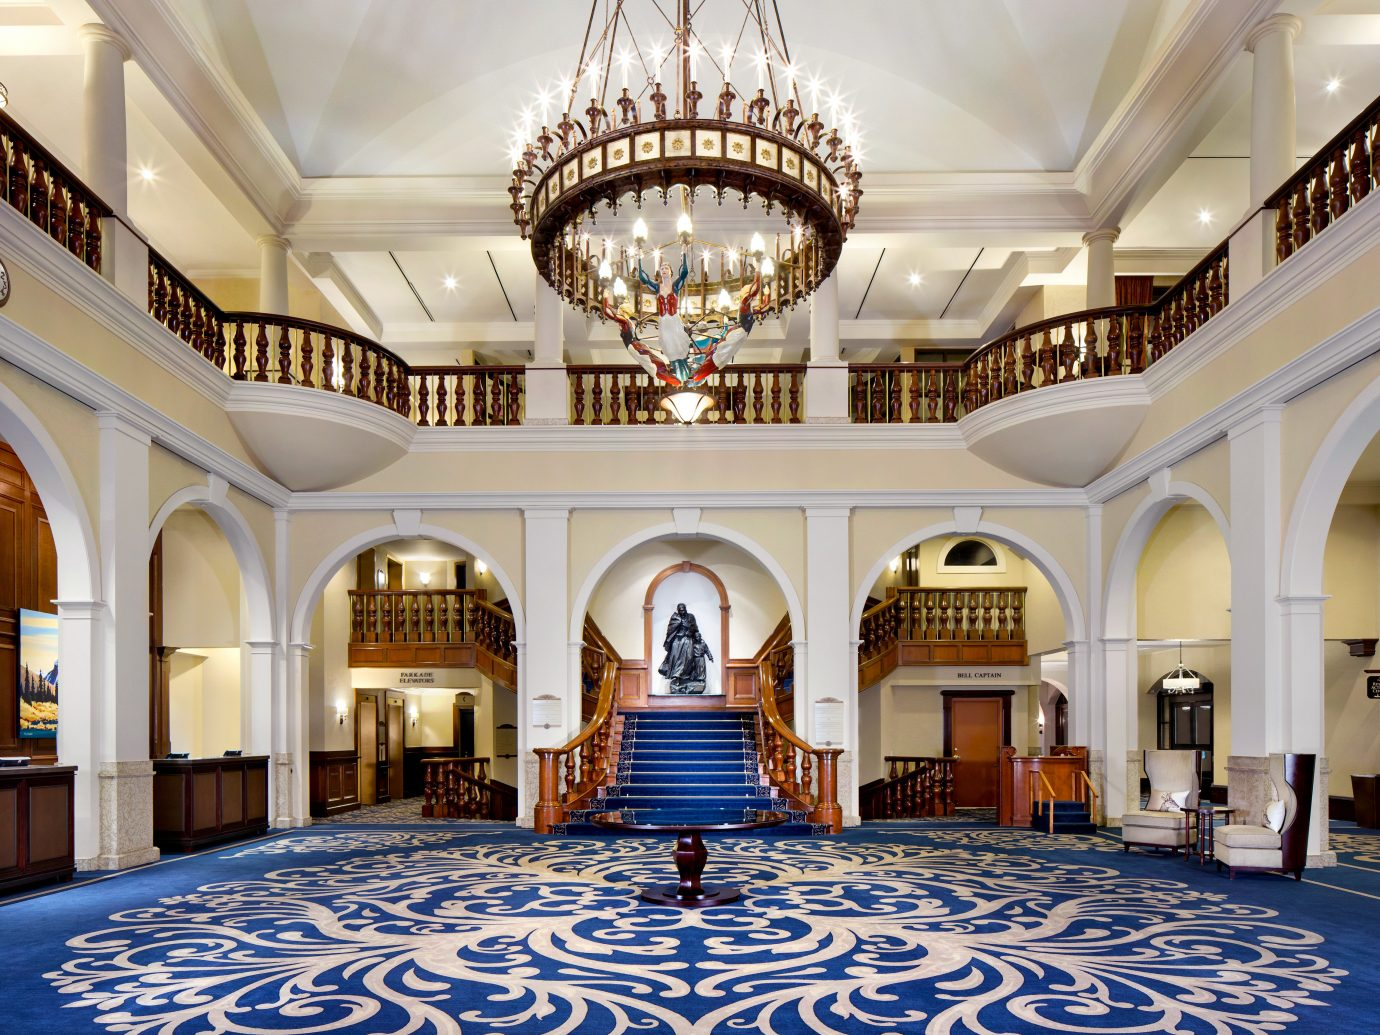 Alberta Boutique Hotels Canada Hotels Lobby Resort Road Trips indoor ceiling blue estate palace mansion room building Architecture function hall ballroom interior design arch hall furniture